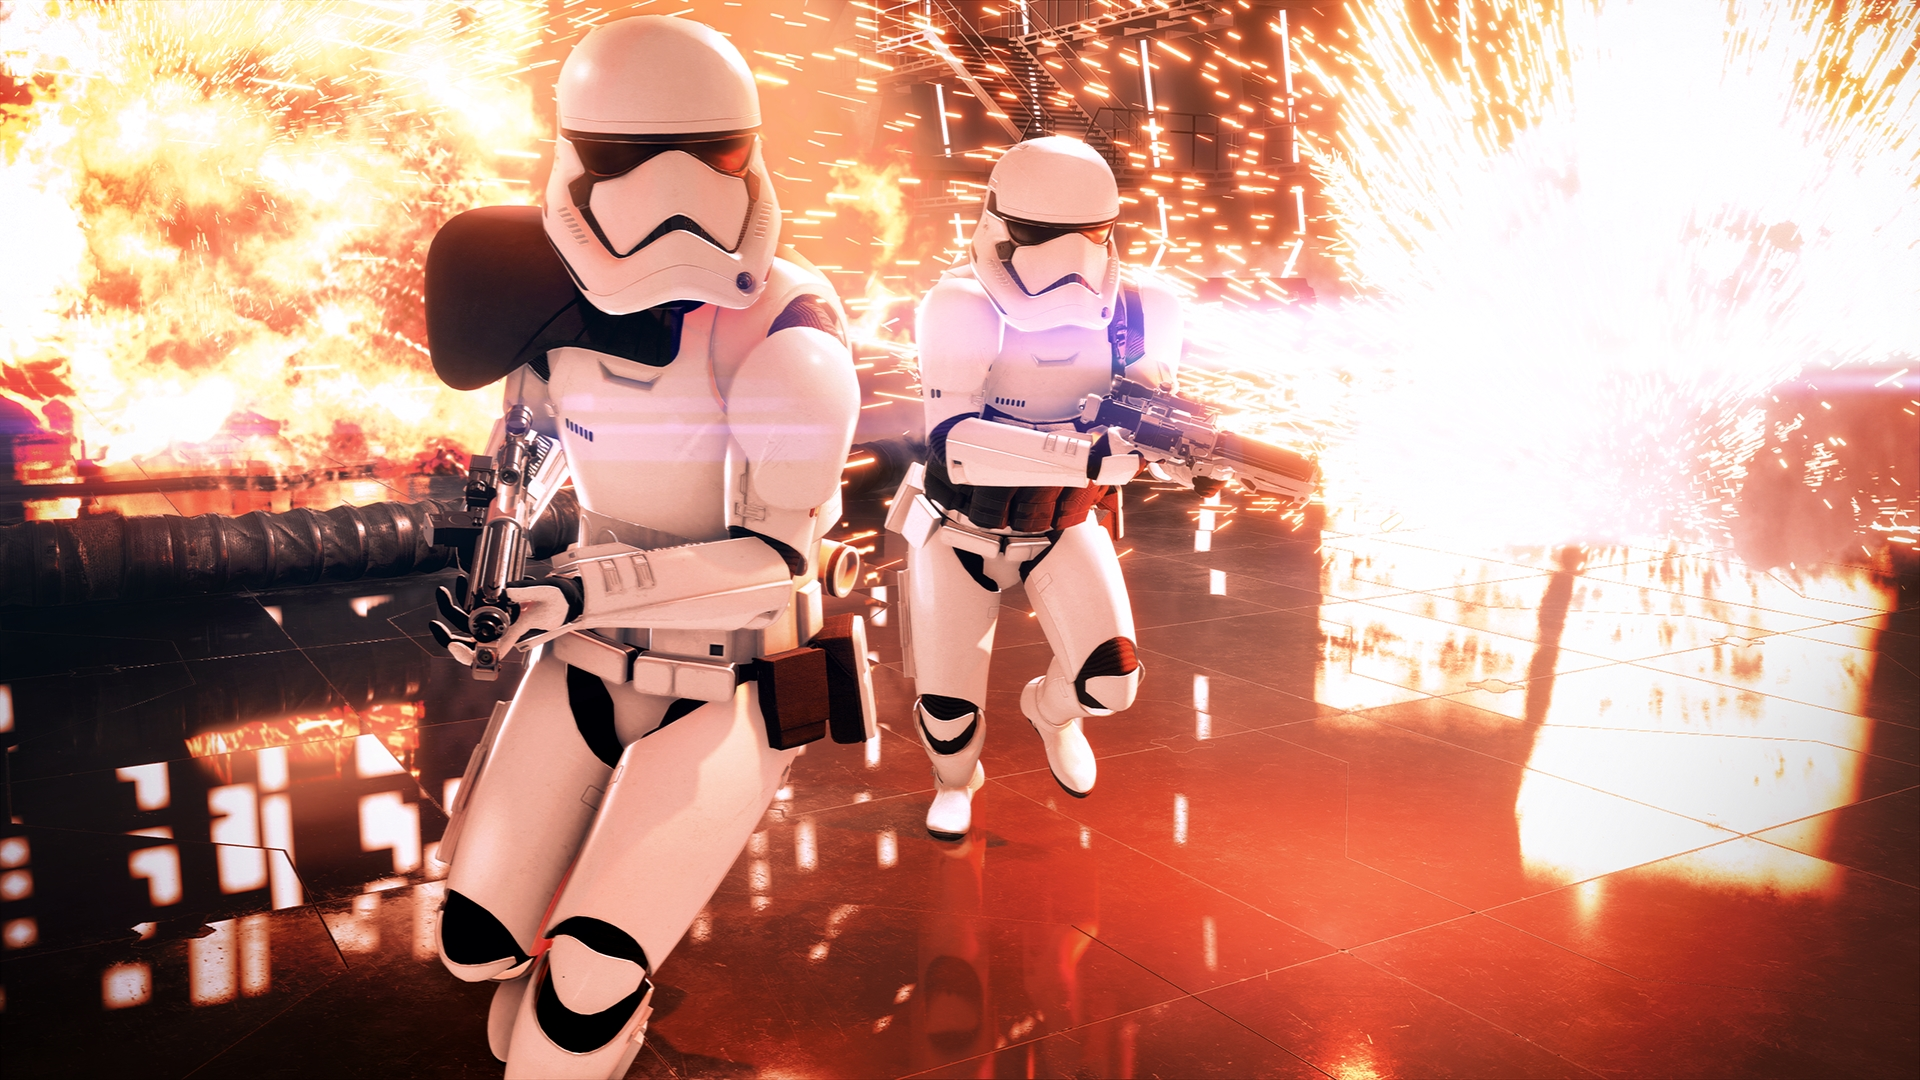 Why EA should make Star Wars: Battlefront III – Reader's Feature